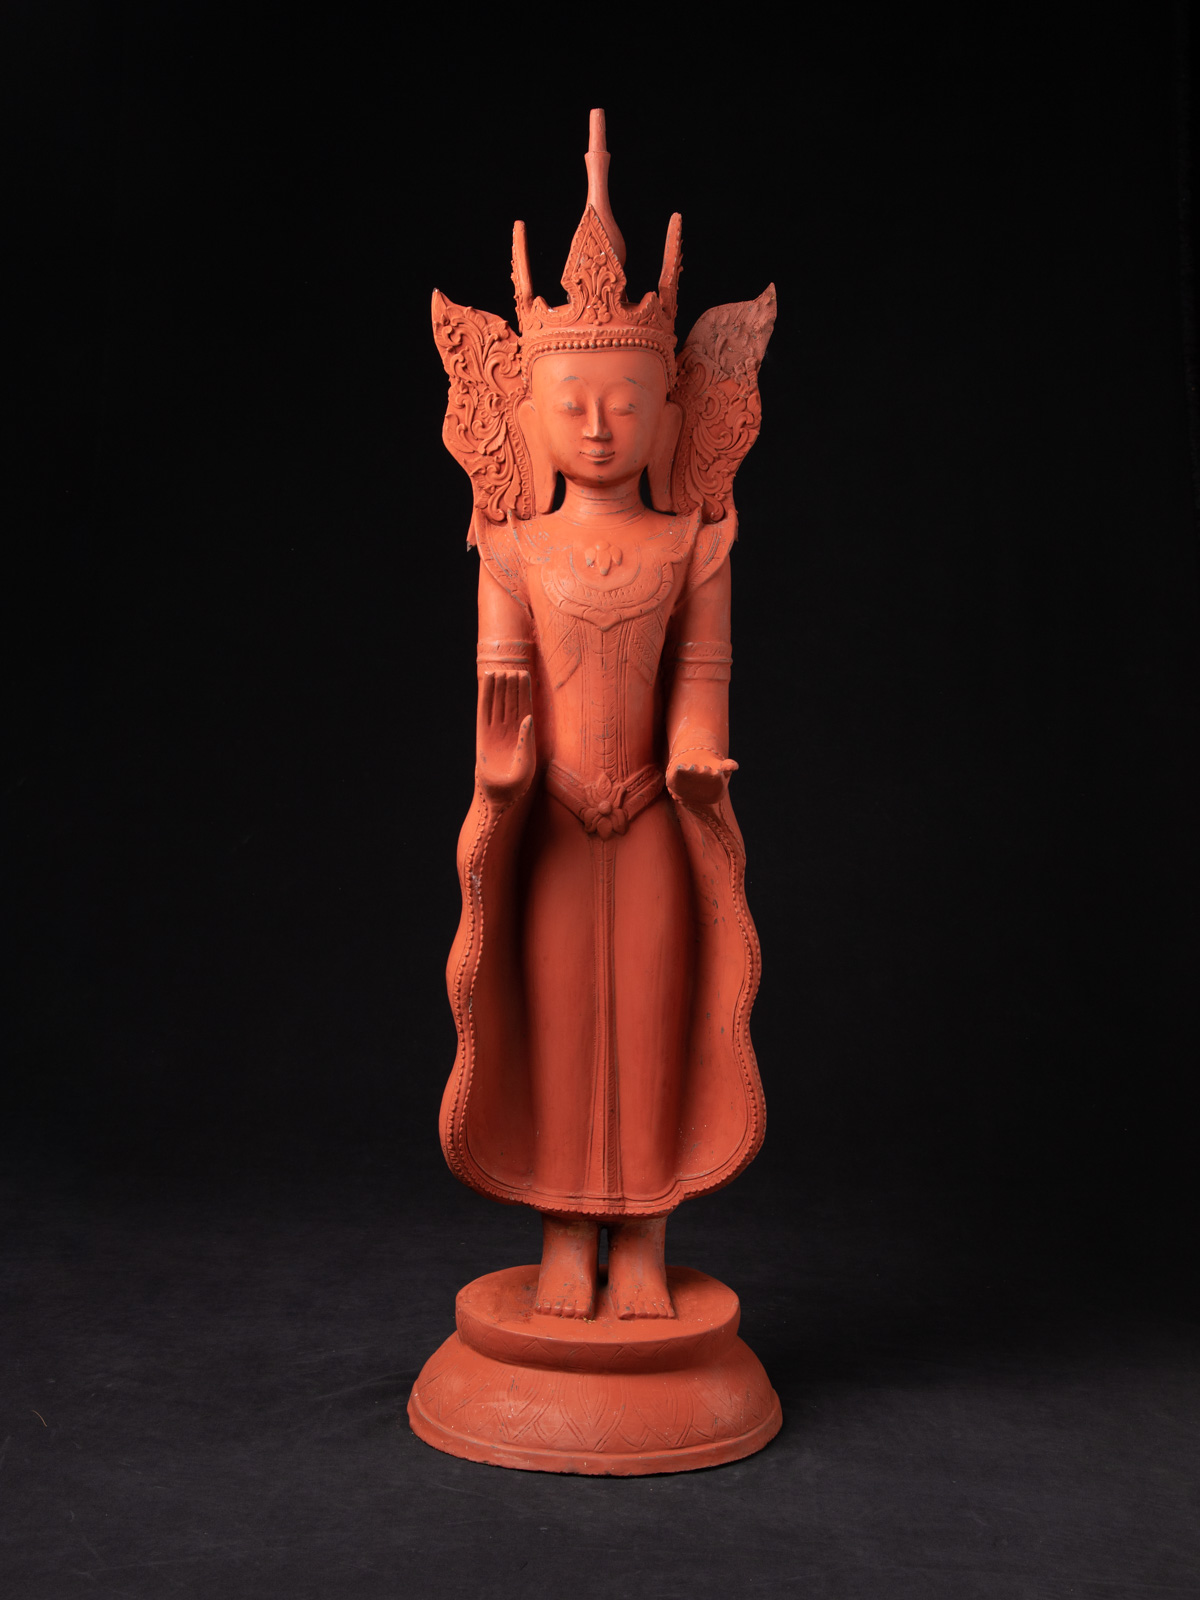 Old standing Buddha from Burma made from lacquer